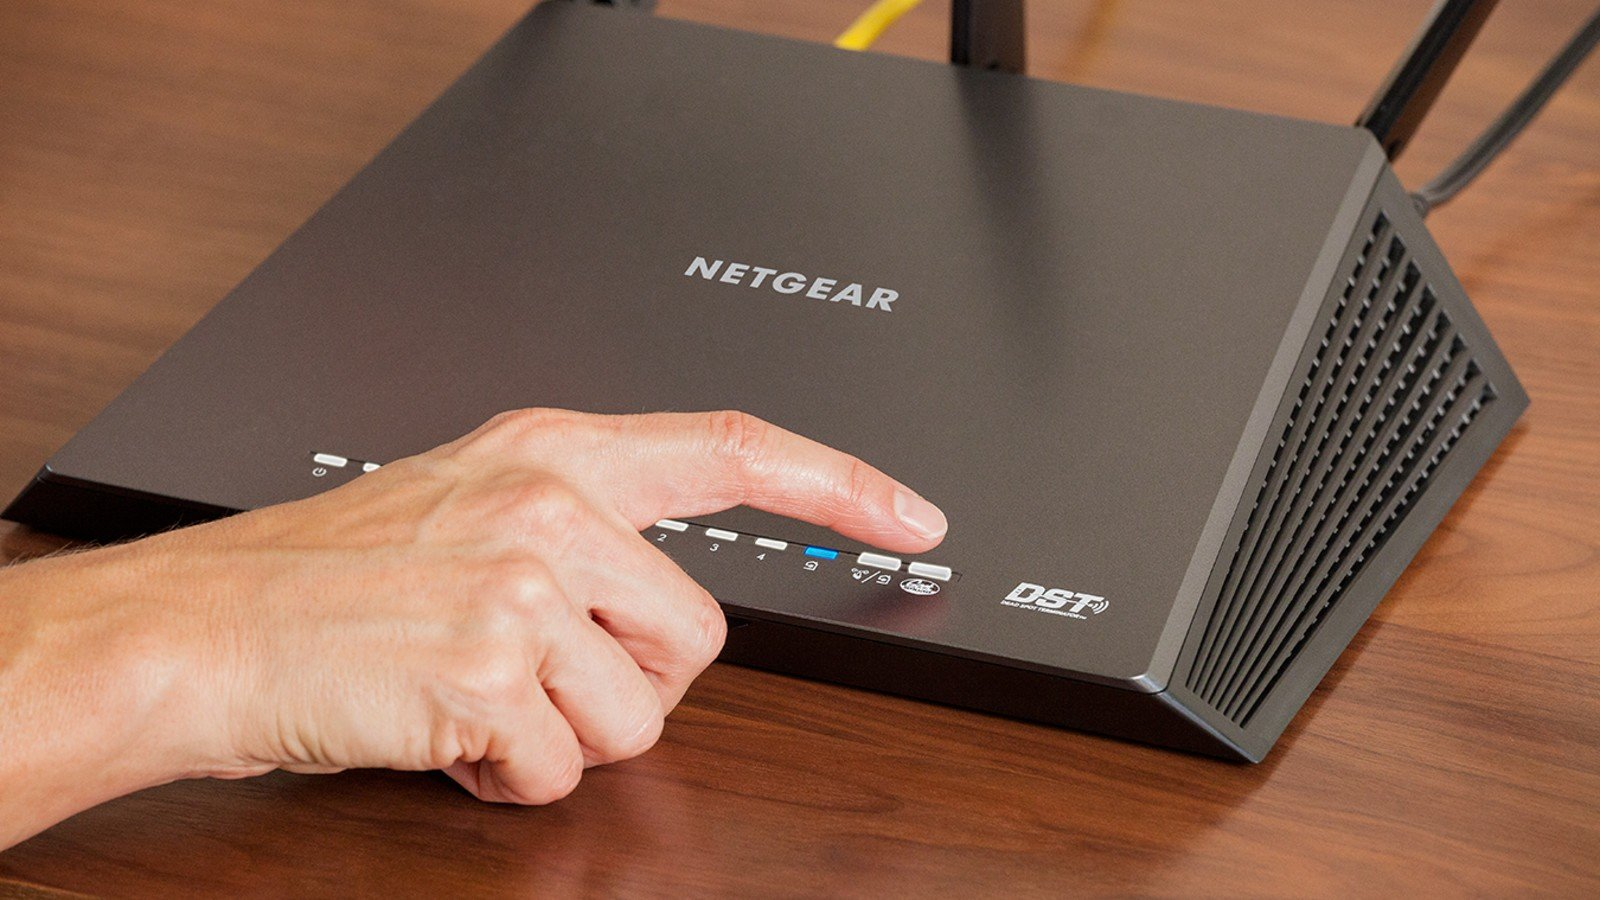 How to Backup Netgear Router Using Default IP Address?